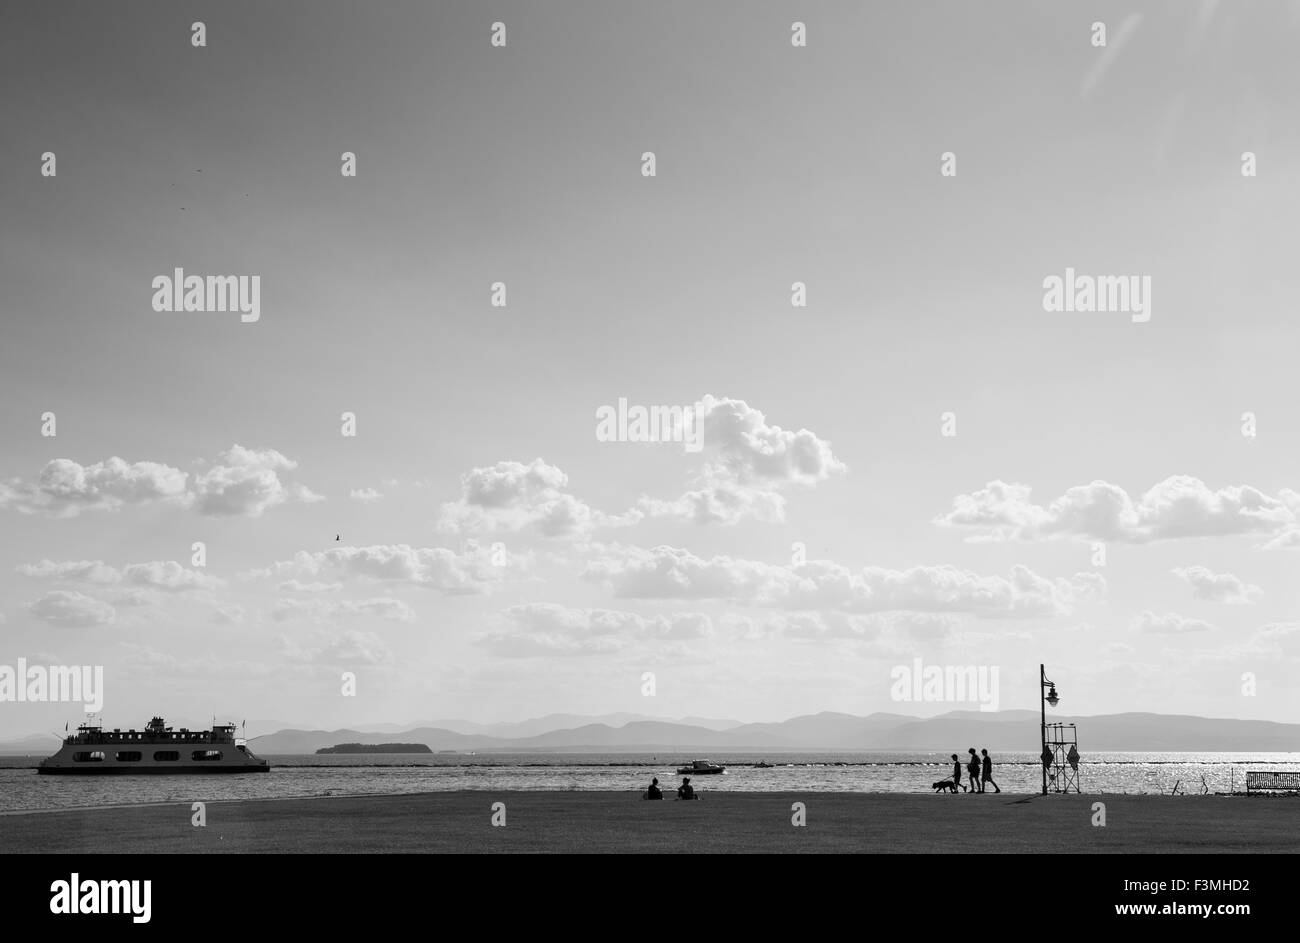 Burlington Vermont Lakefront Park with ferry , in Black and White - Stock Image